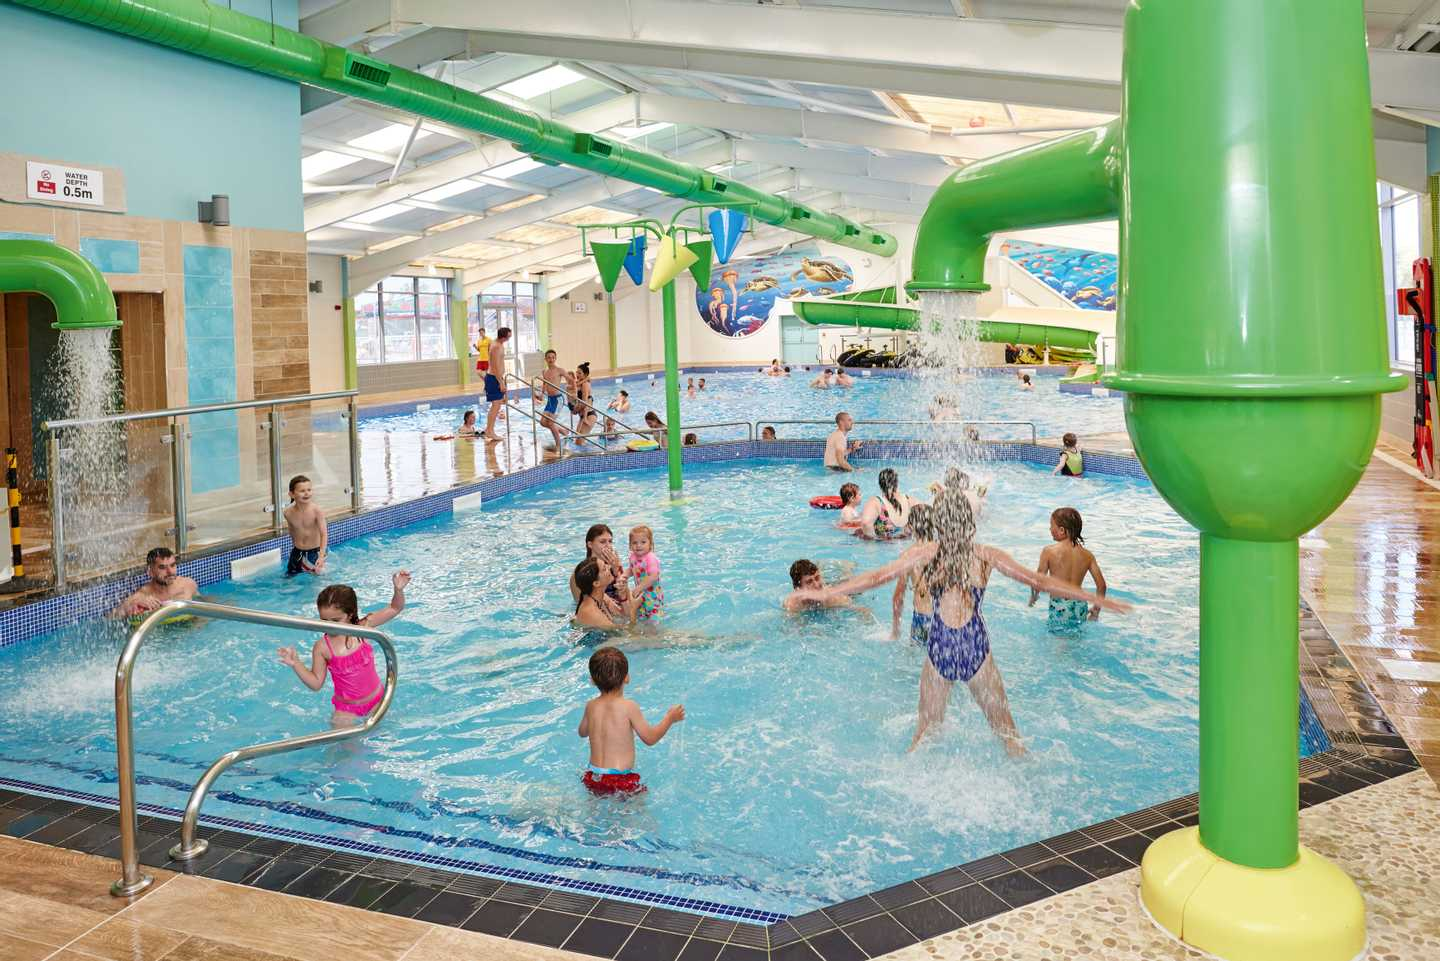 Families having fun in the heated indoor pool